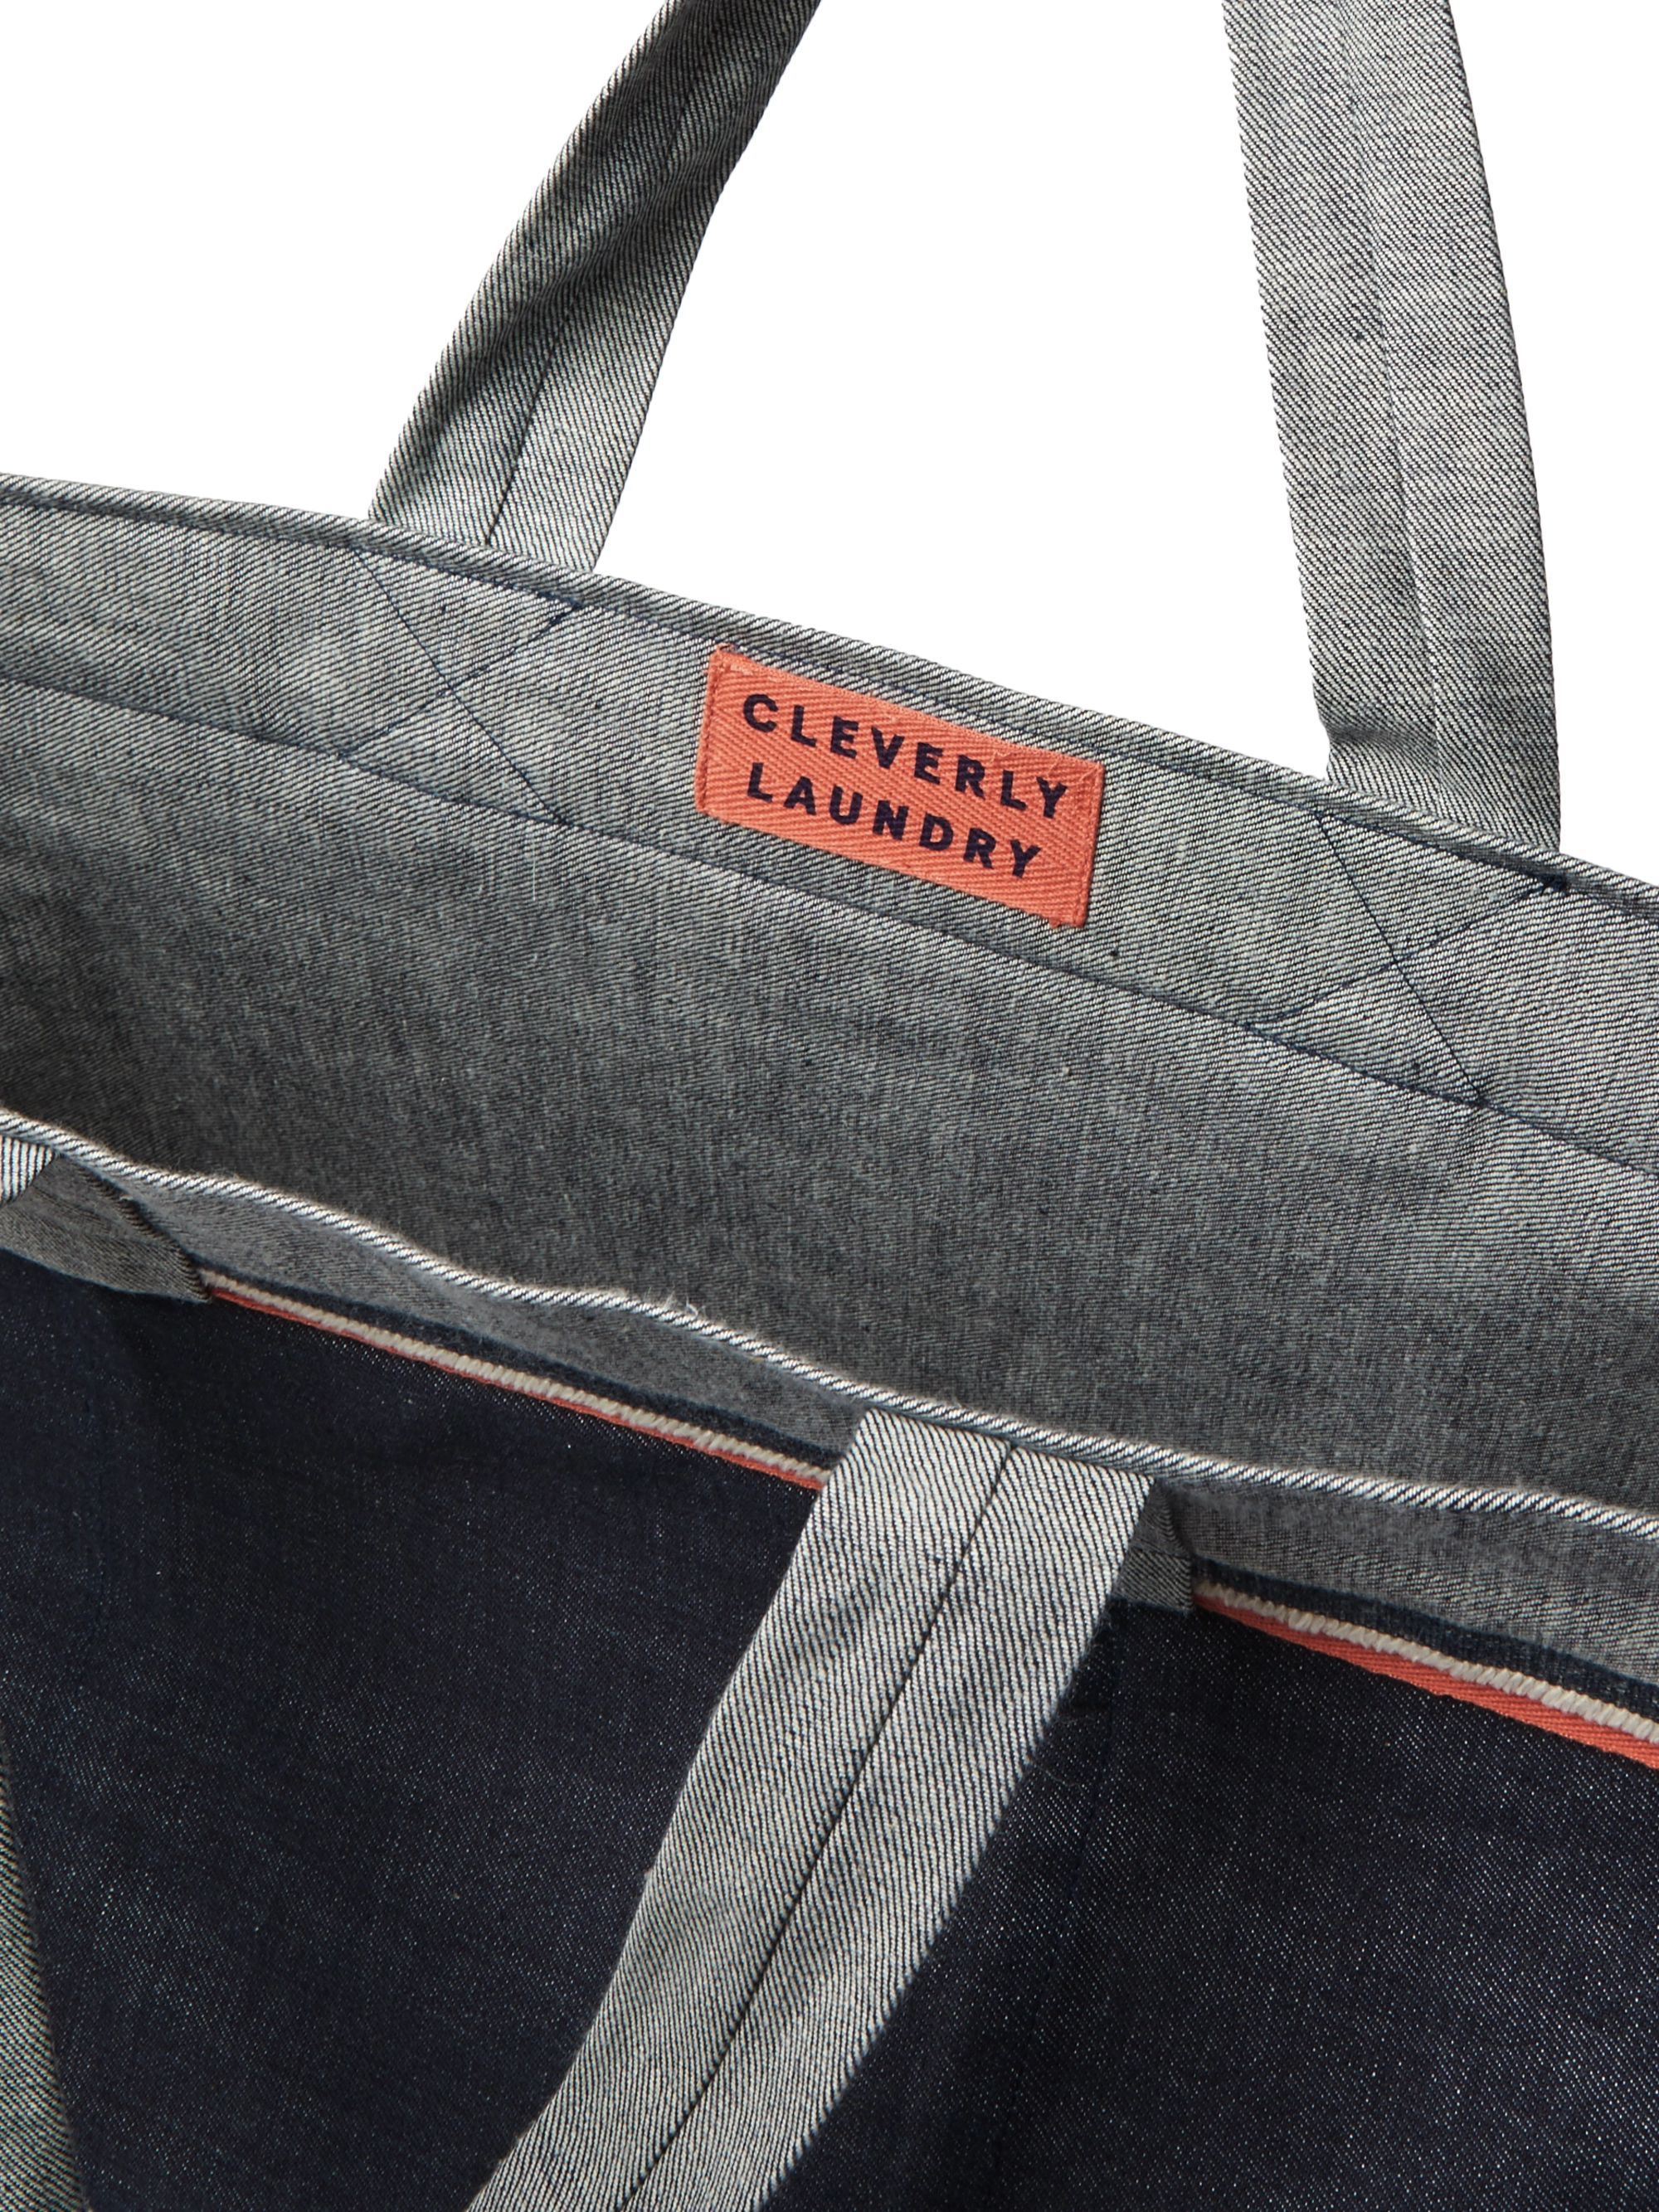 Cleverly Laundry Grosgrain-Trimmed Denim Tote Bag